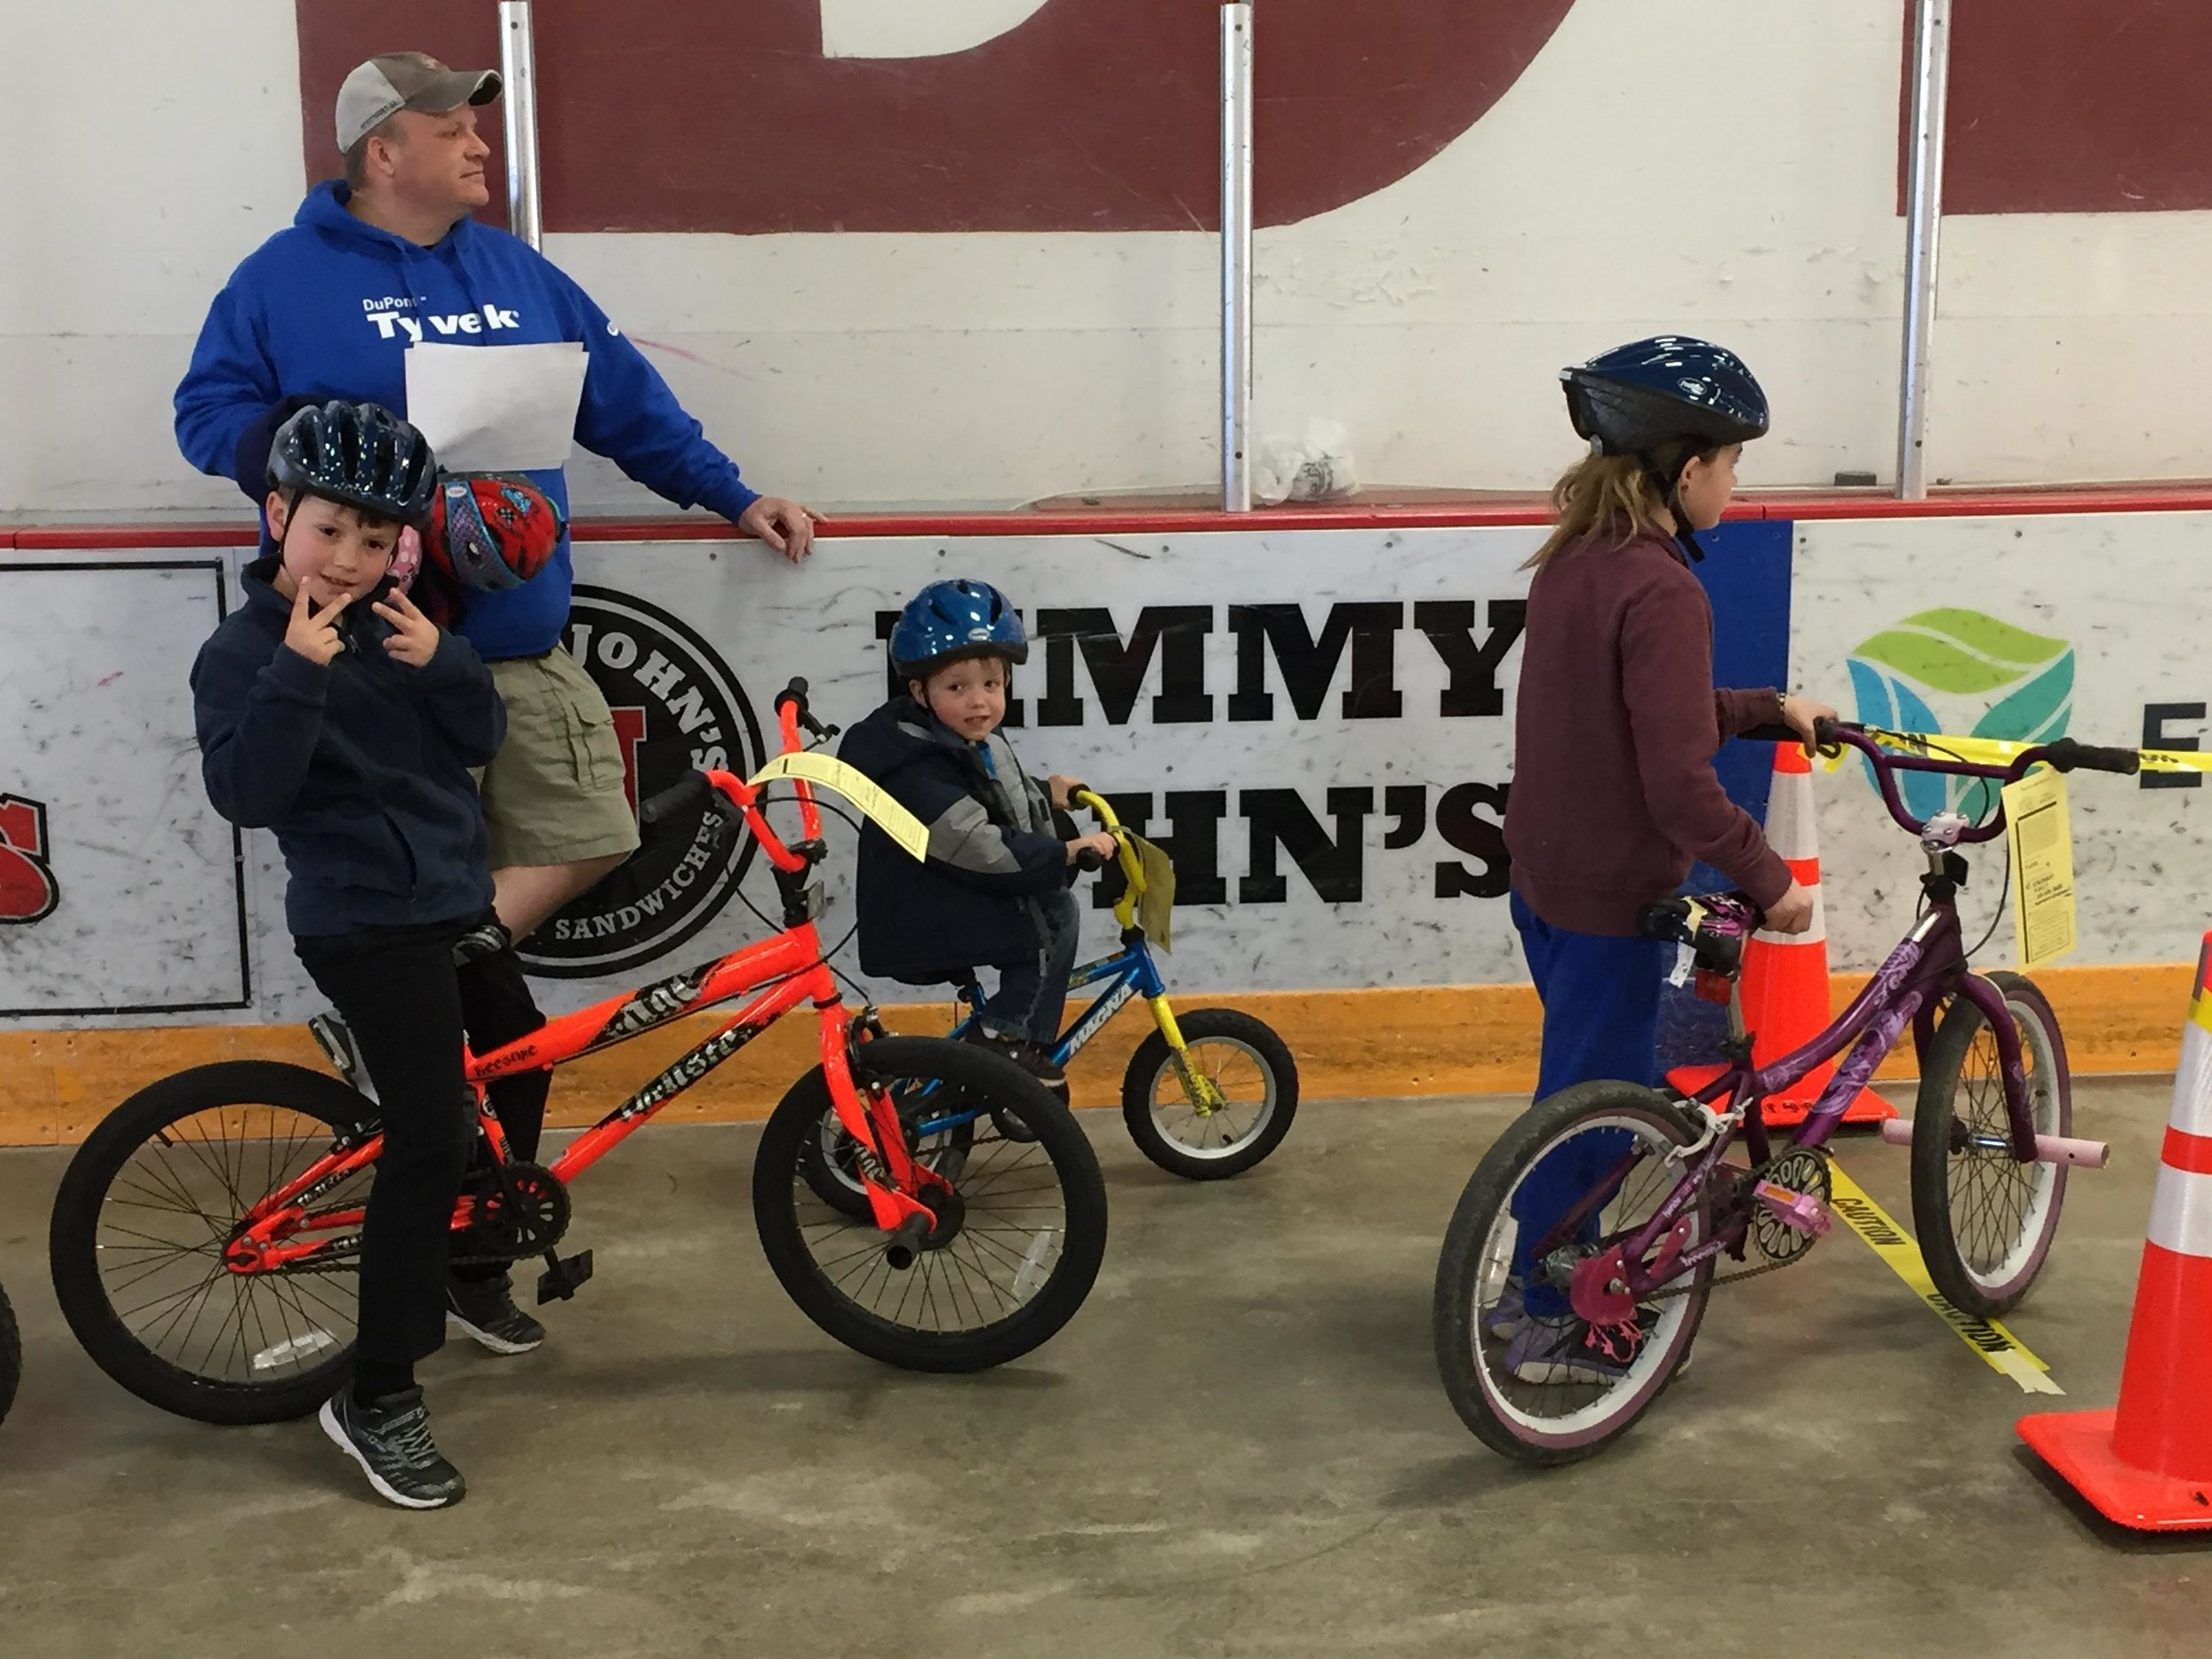 Kids of all ages, riding bikes appropriate to their size, will take part in the 9th Annual Detroit Lakes Bicycle Rodeo on Saturday, April 27 at Kent Freeman Arena. (Submitted photo)